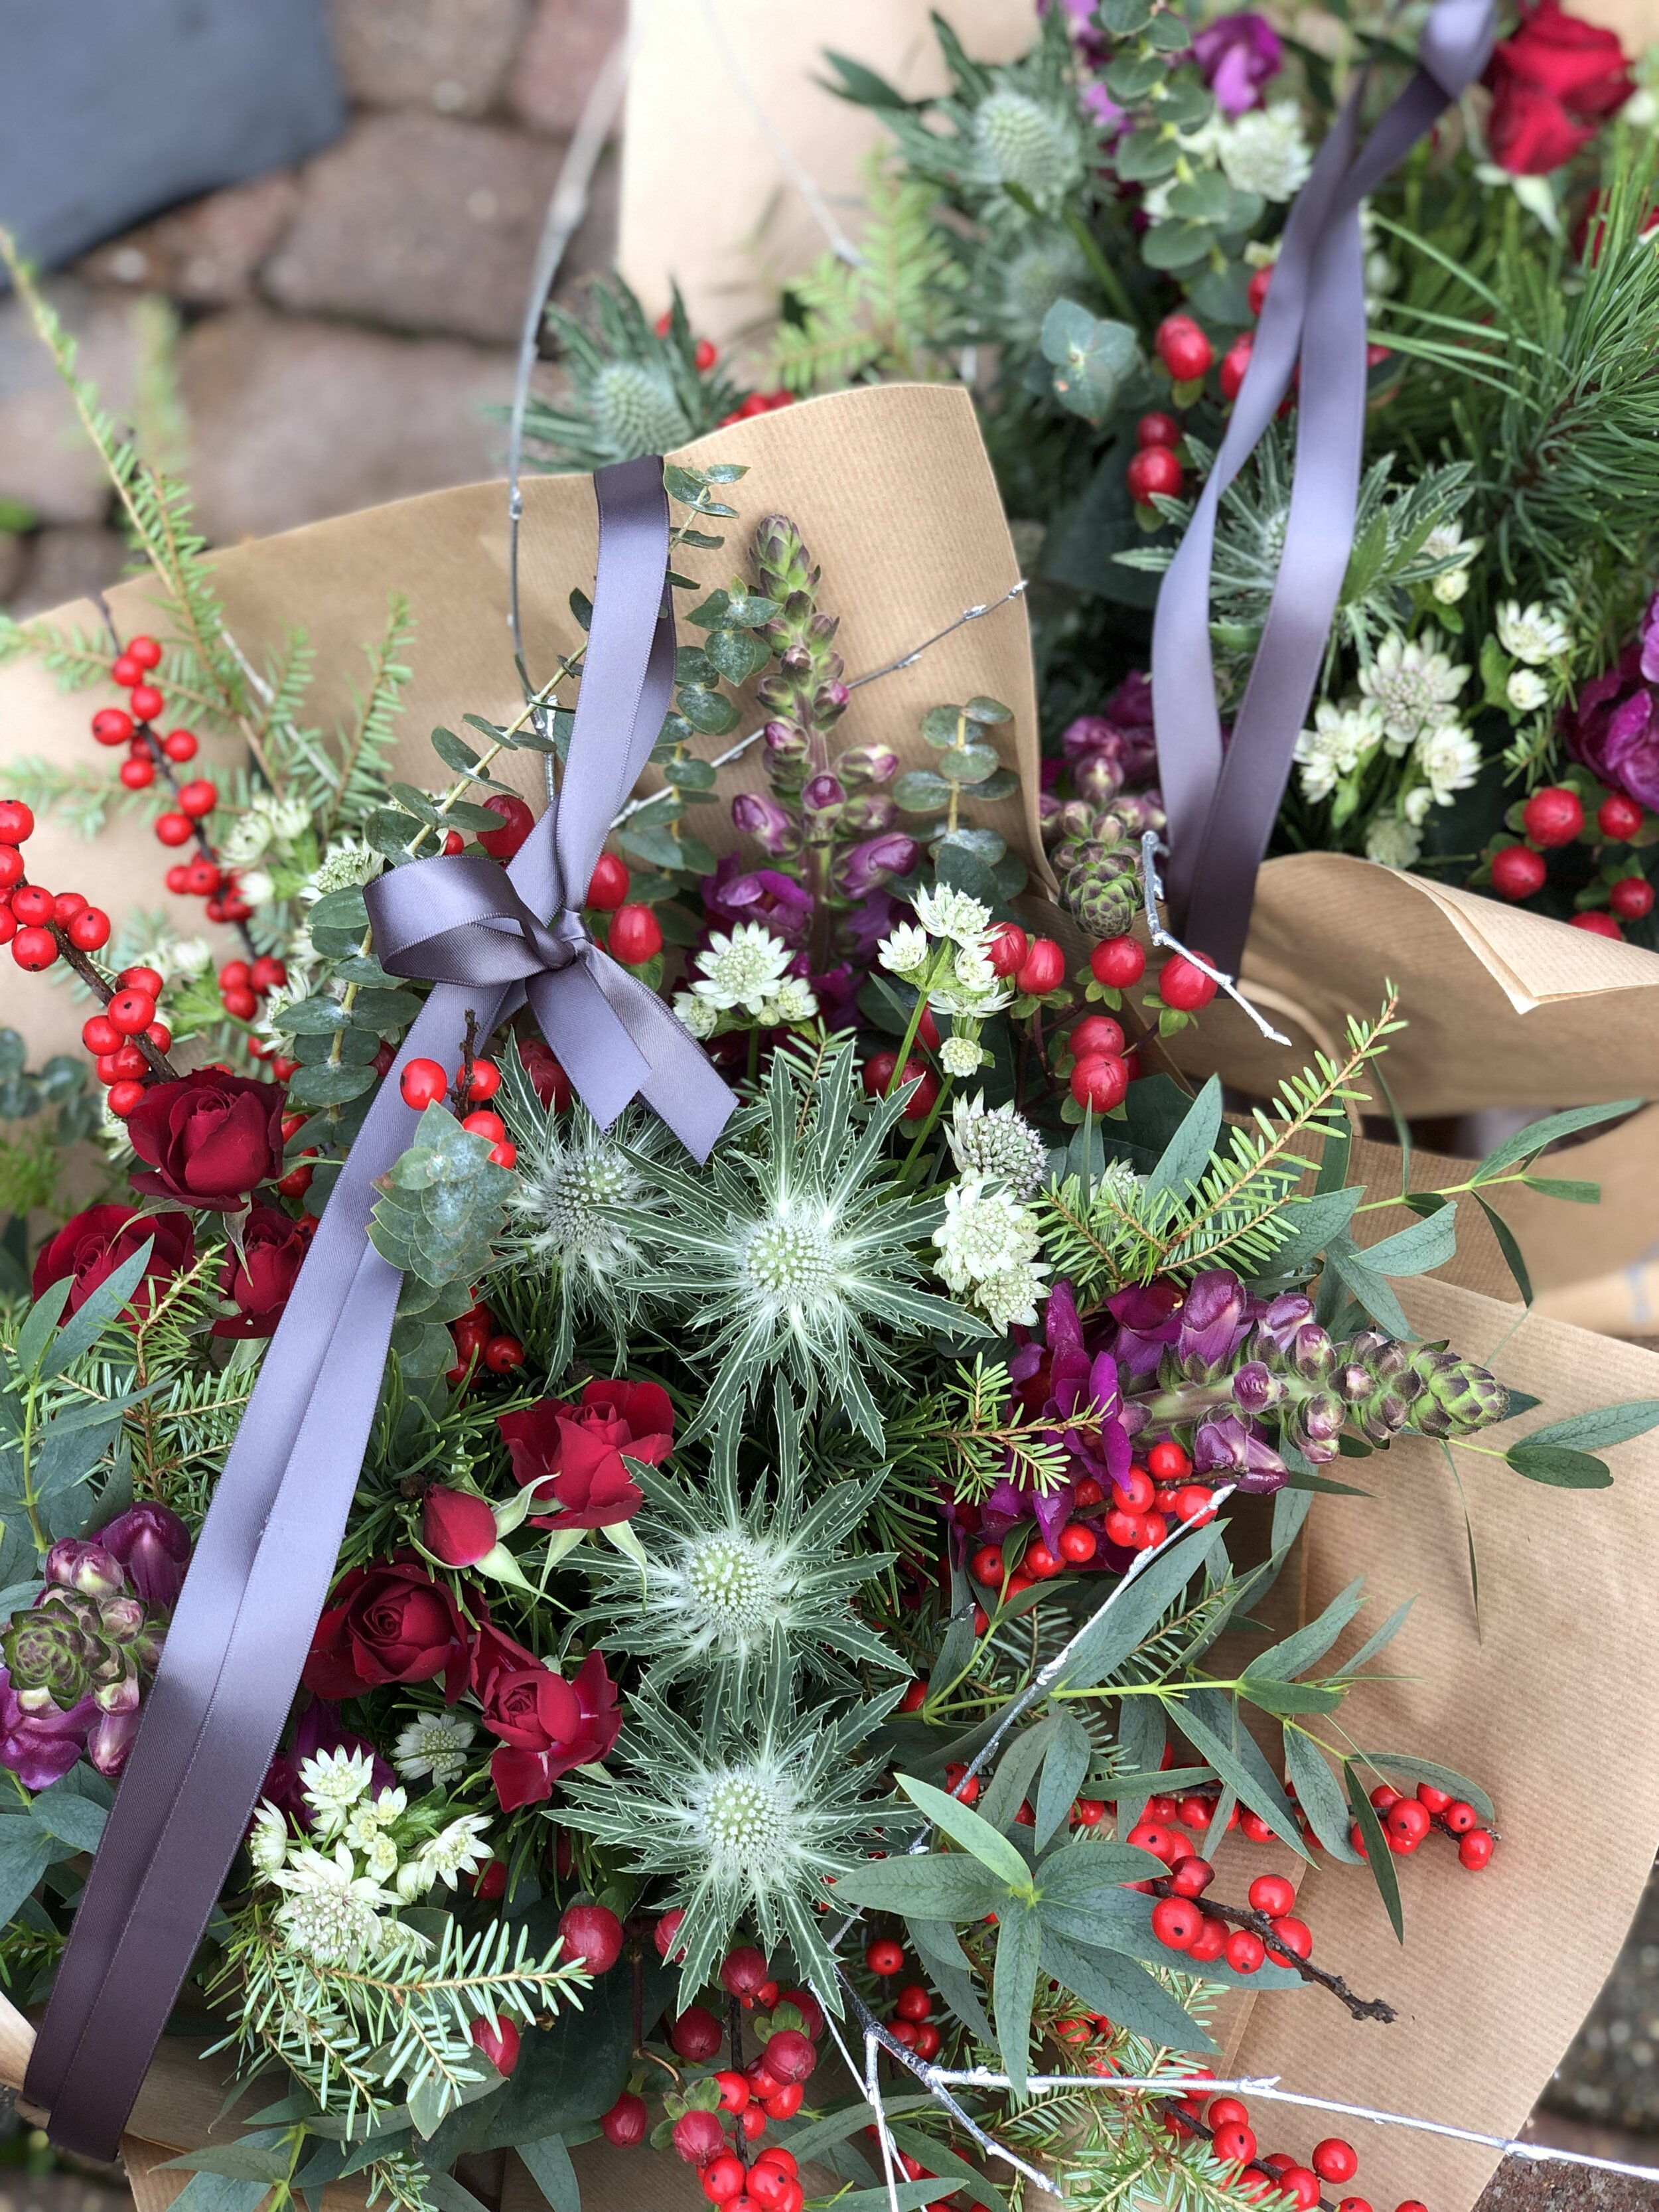 Christmas flowers - Festive gift bouquets and table arrangements for Christmas 2019. Available for pre-order, ready for collection or delivery (in Eastbourne) from Saturday 21st December until Christmas Eve morning.